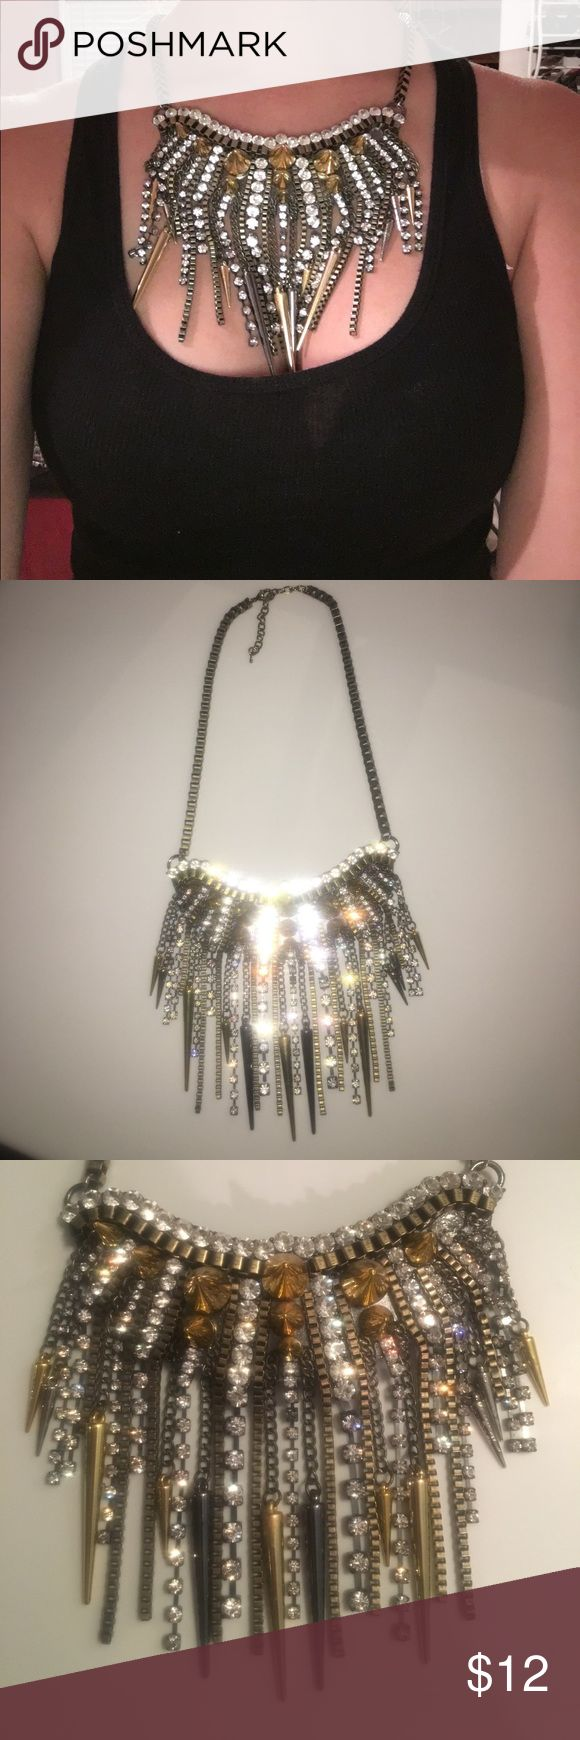 Prima Donna Statement necklace This statement necklace is perfect for a night out with the girls. It's elements of gold, metal, and green hues go perfect with any outfit. Vanderpump rules star, Stassi Schroeder wears the same one in Vanderpump Rules on Bravo. Prima Donna Jewelry Necklaces